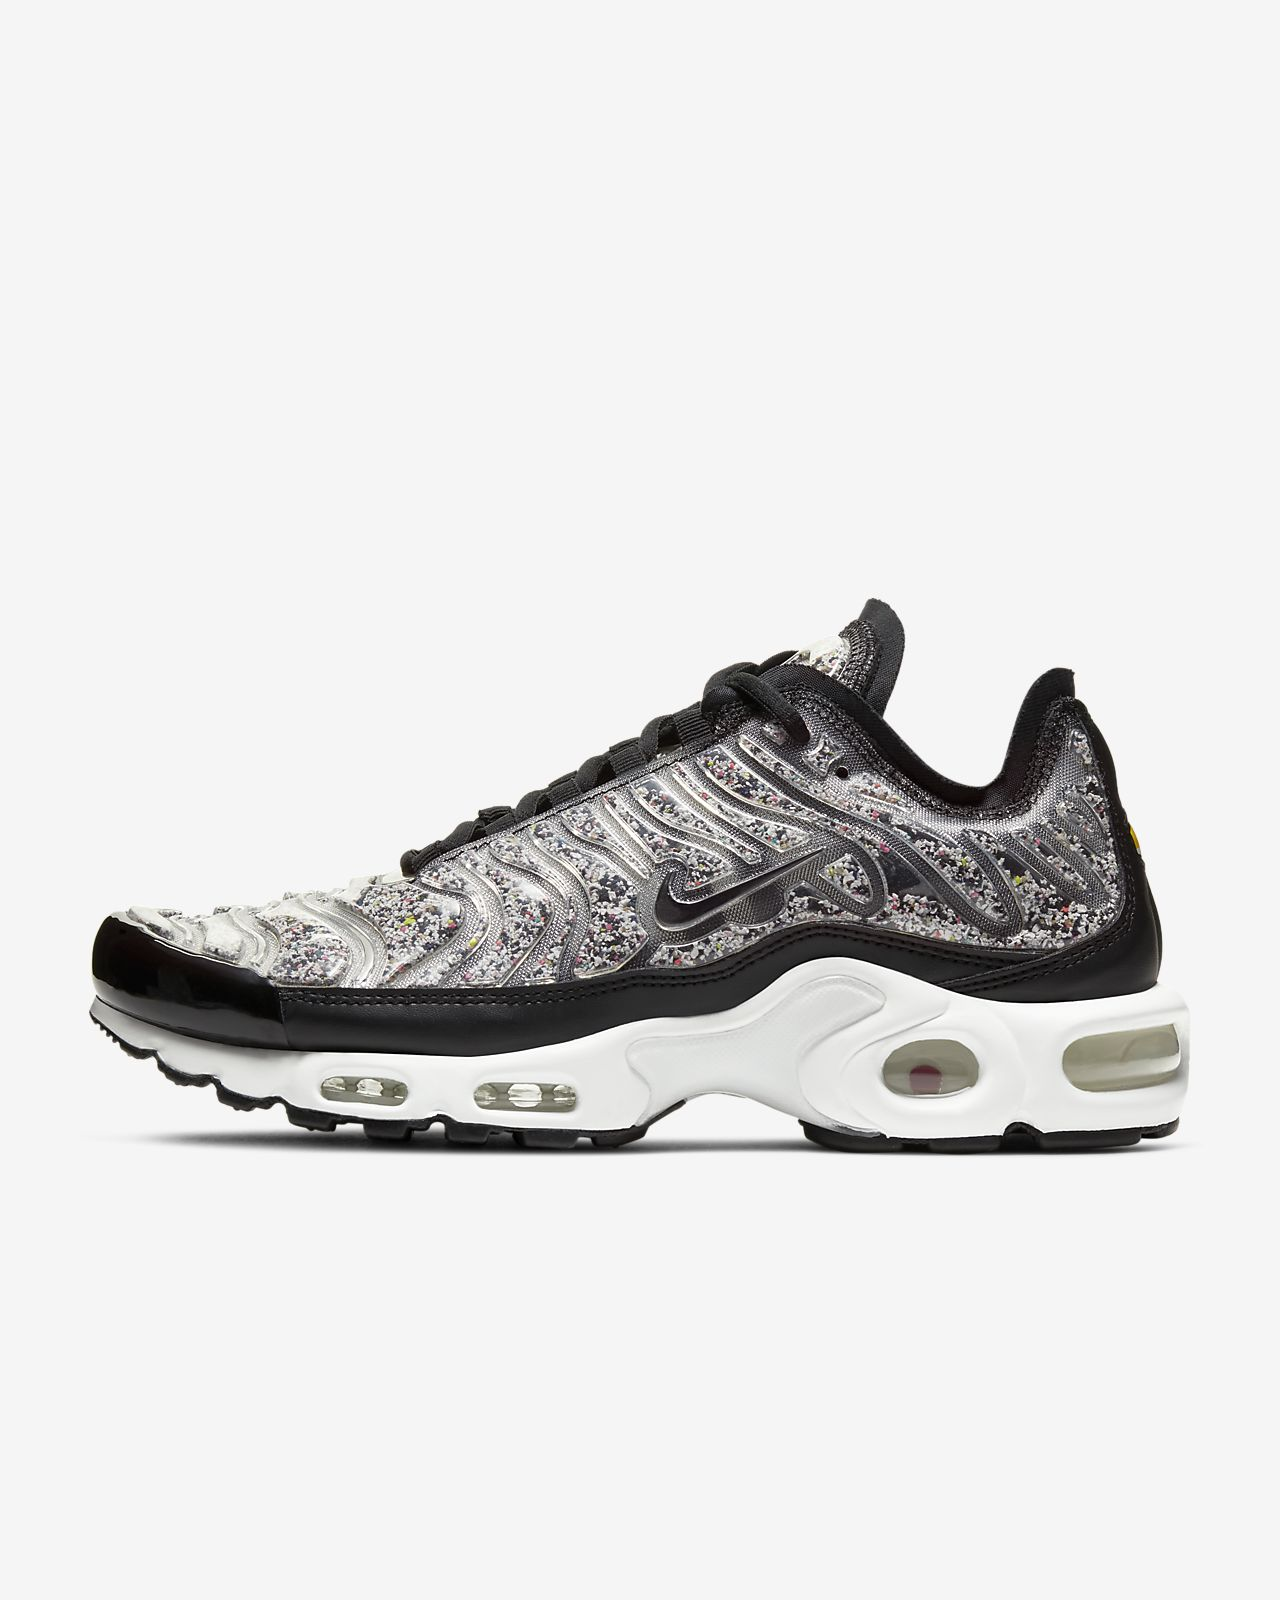 Nike Air Max Plus LX Damenschuh